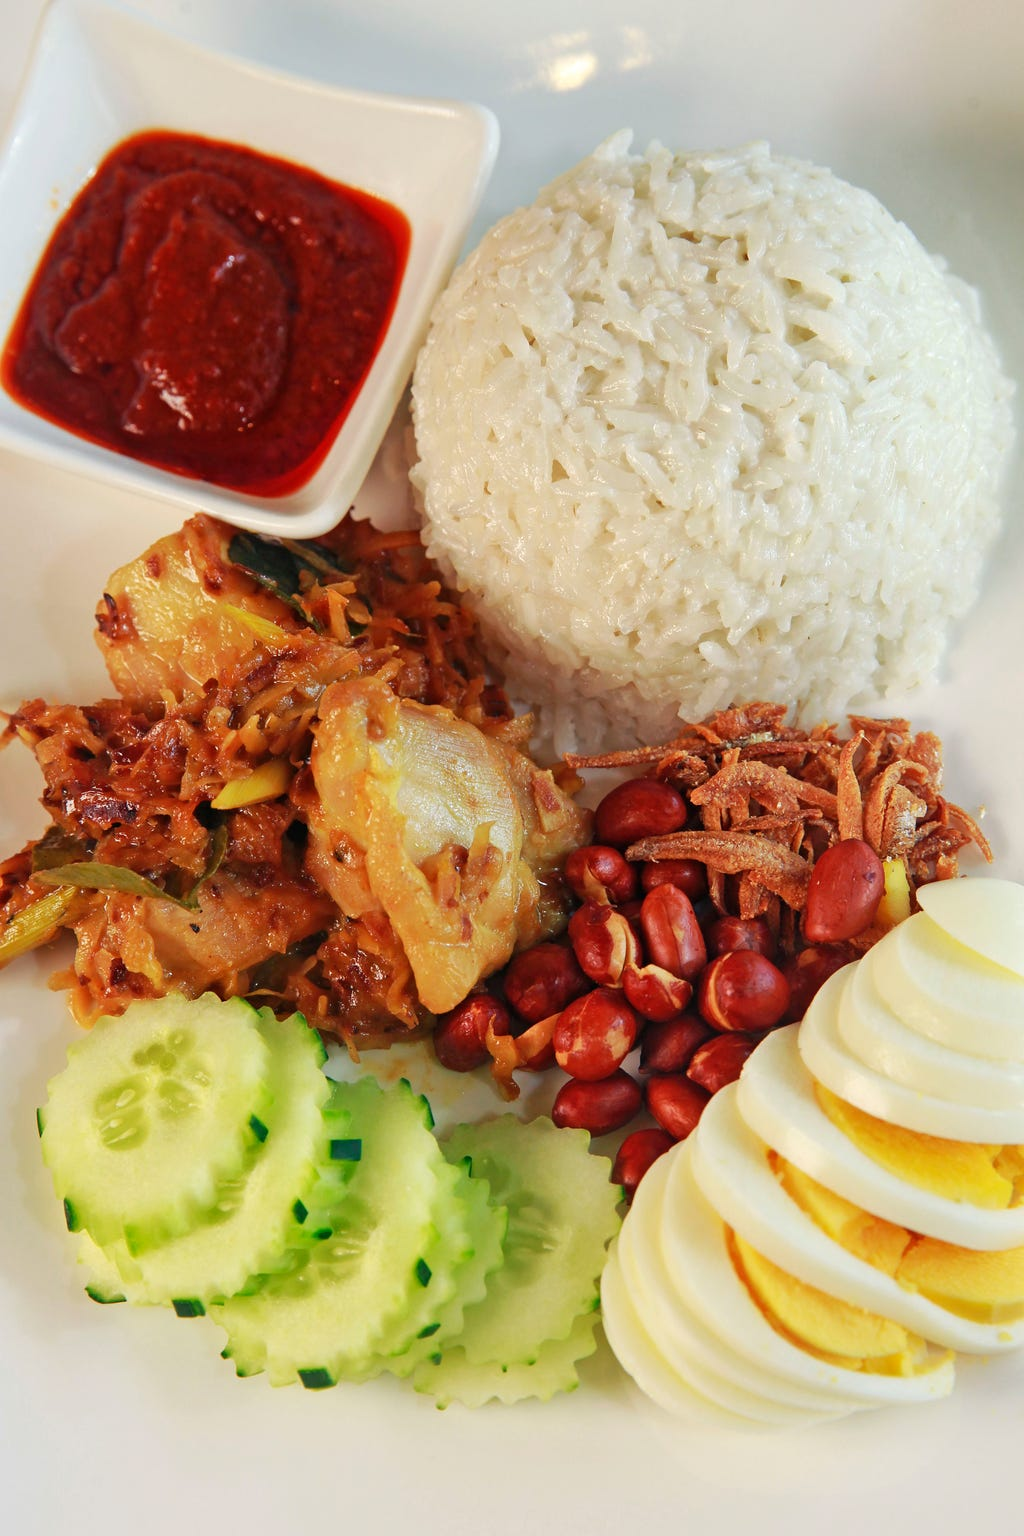 Nasi lemak is coconut-flavored rice with eggs, cucumber and sambal chile sauce. It's shown here with chicken but also served with beef at  Mr. Wok Pan-Asian Cuisine, 2128 Silvernail Road, Pewaukee.